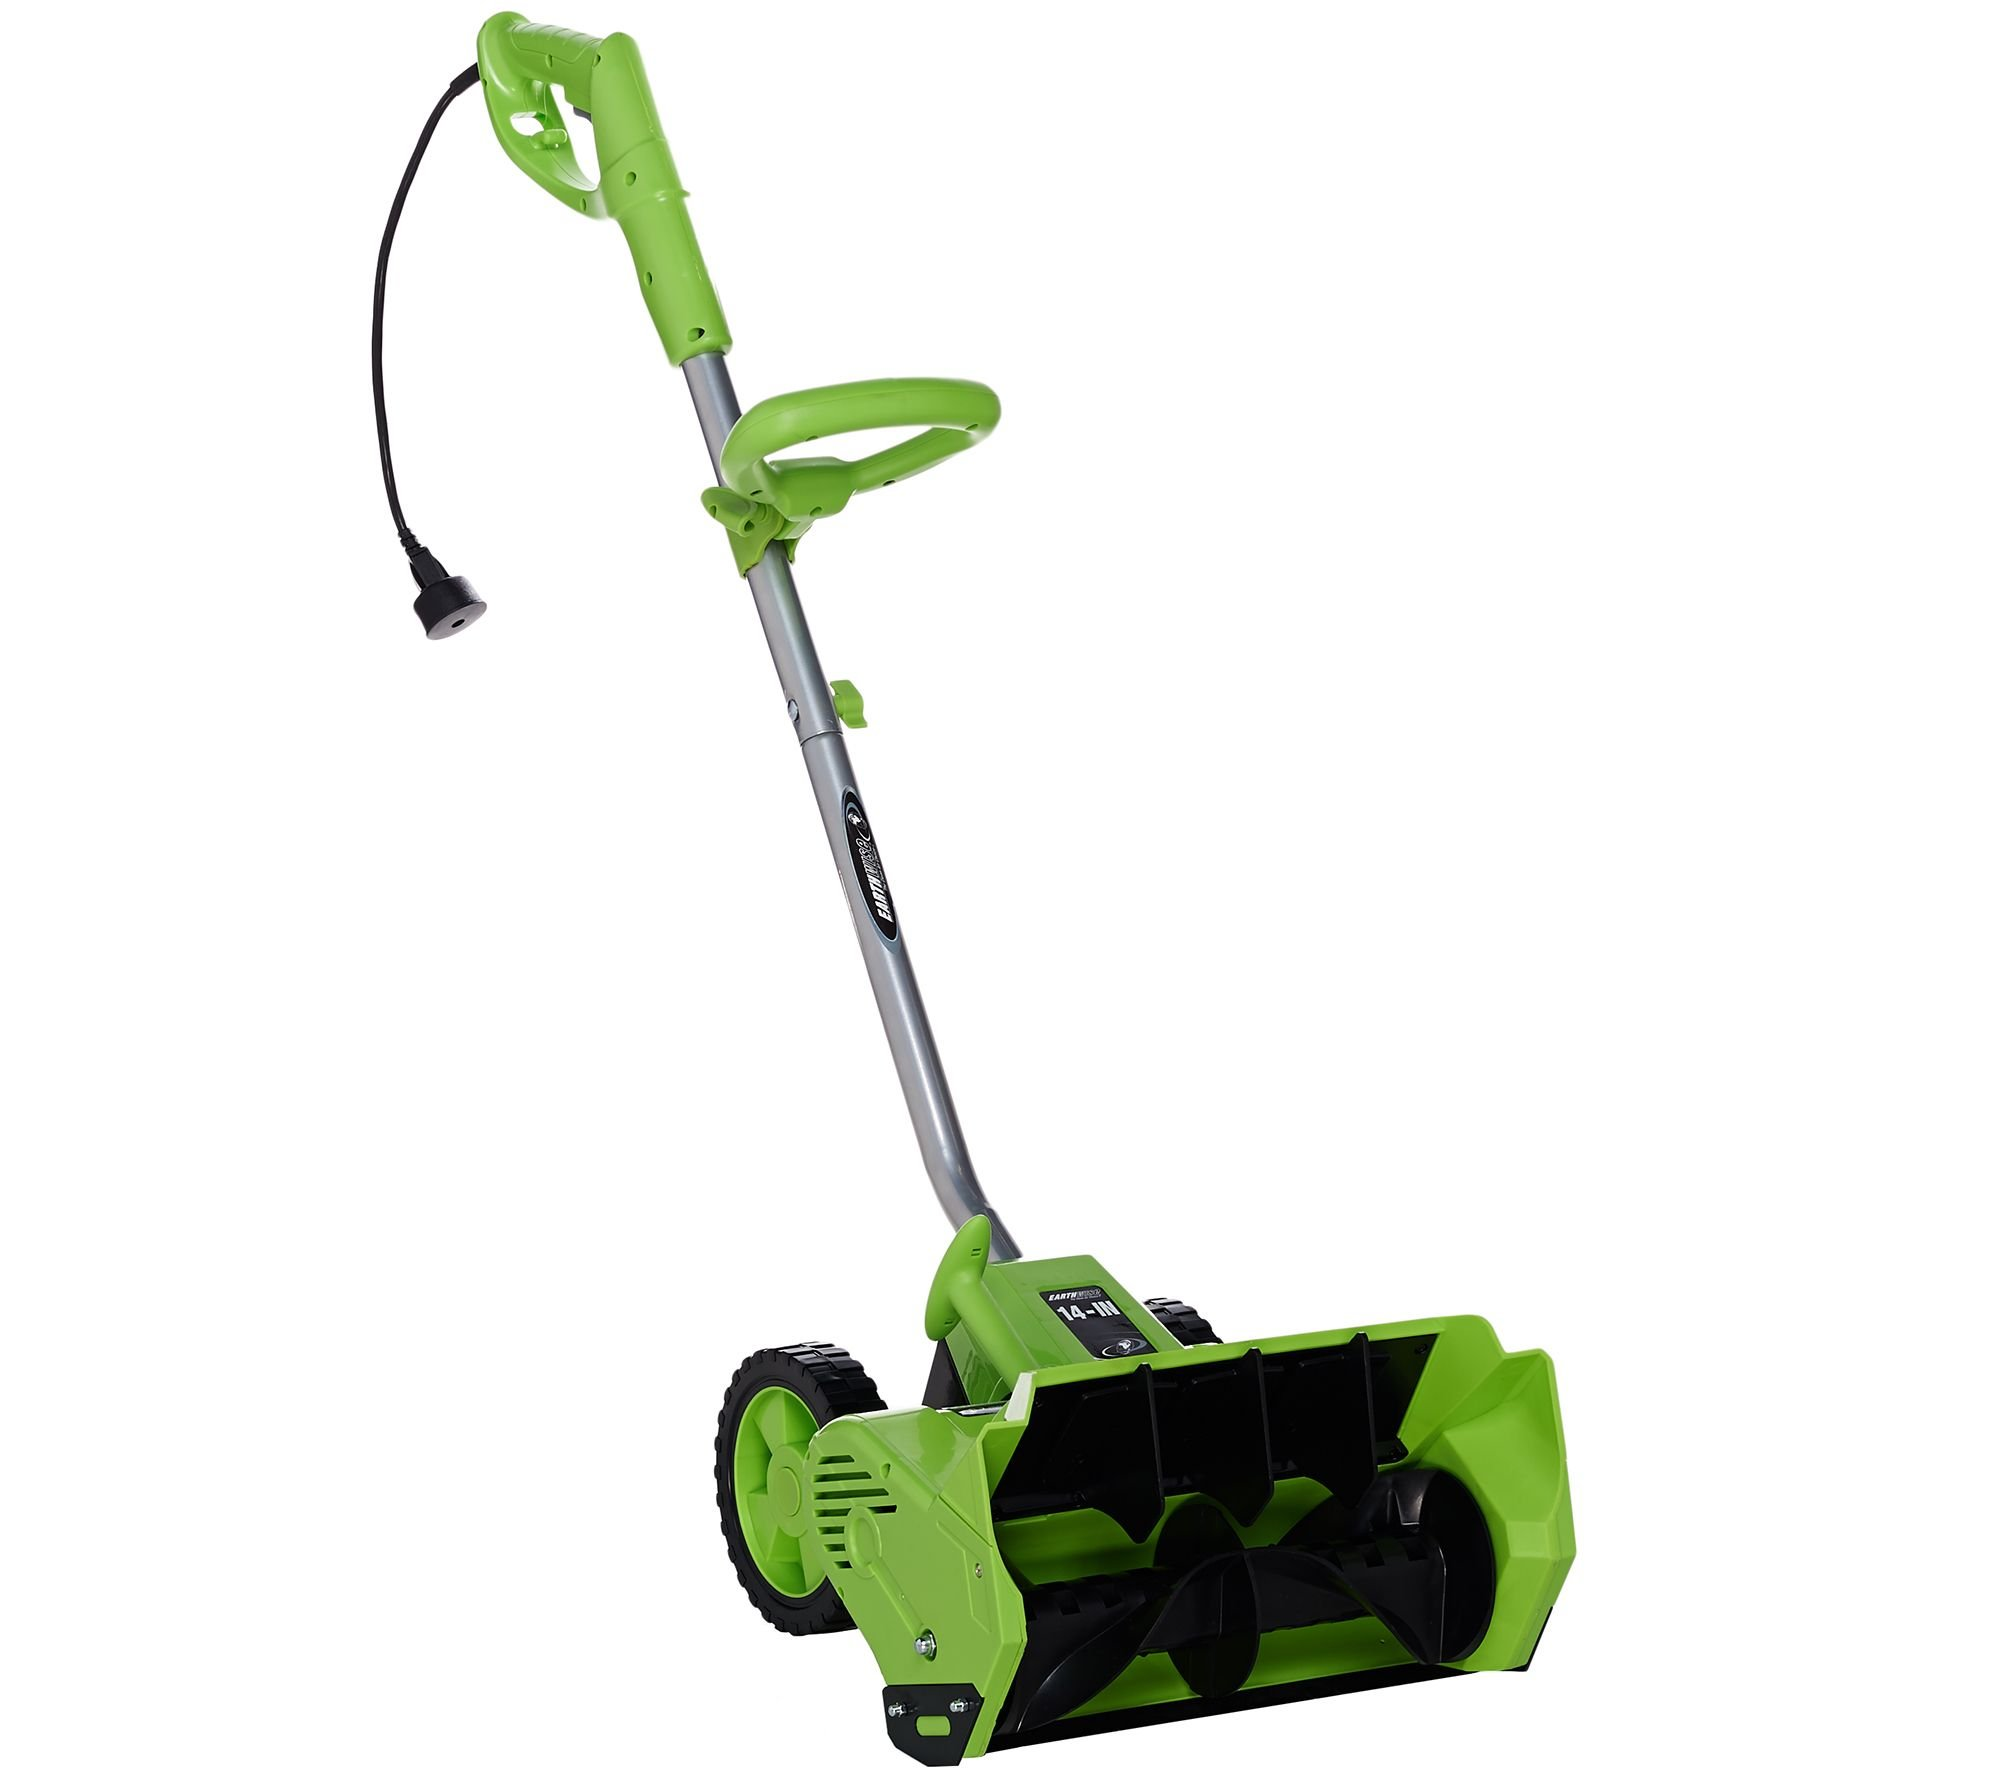 "Earthwise Snow Thrower Snow Shovel 12 AMP Corded Electric 14"" - Assorted Colors"